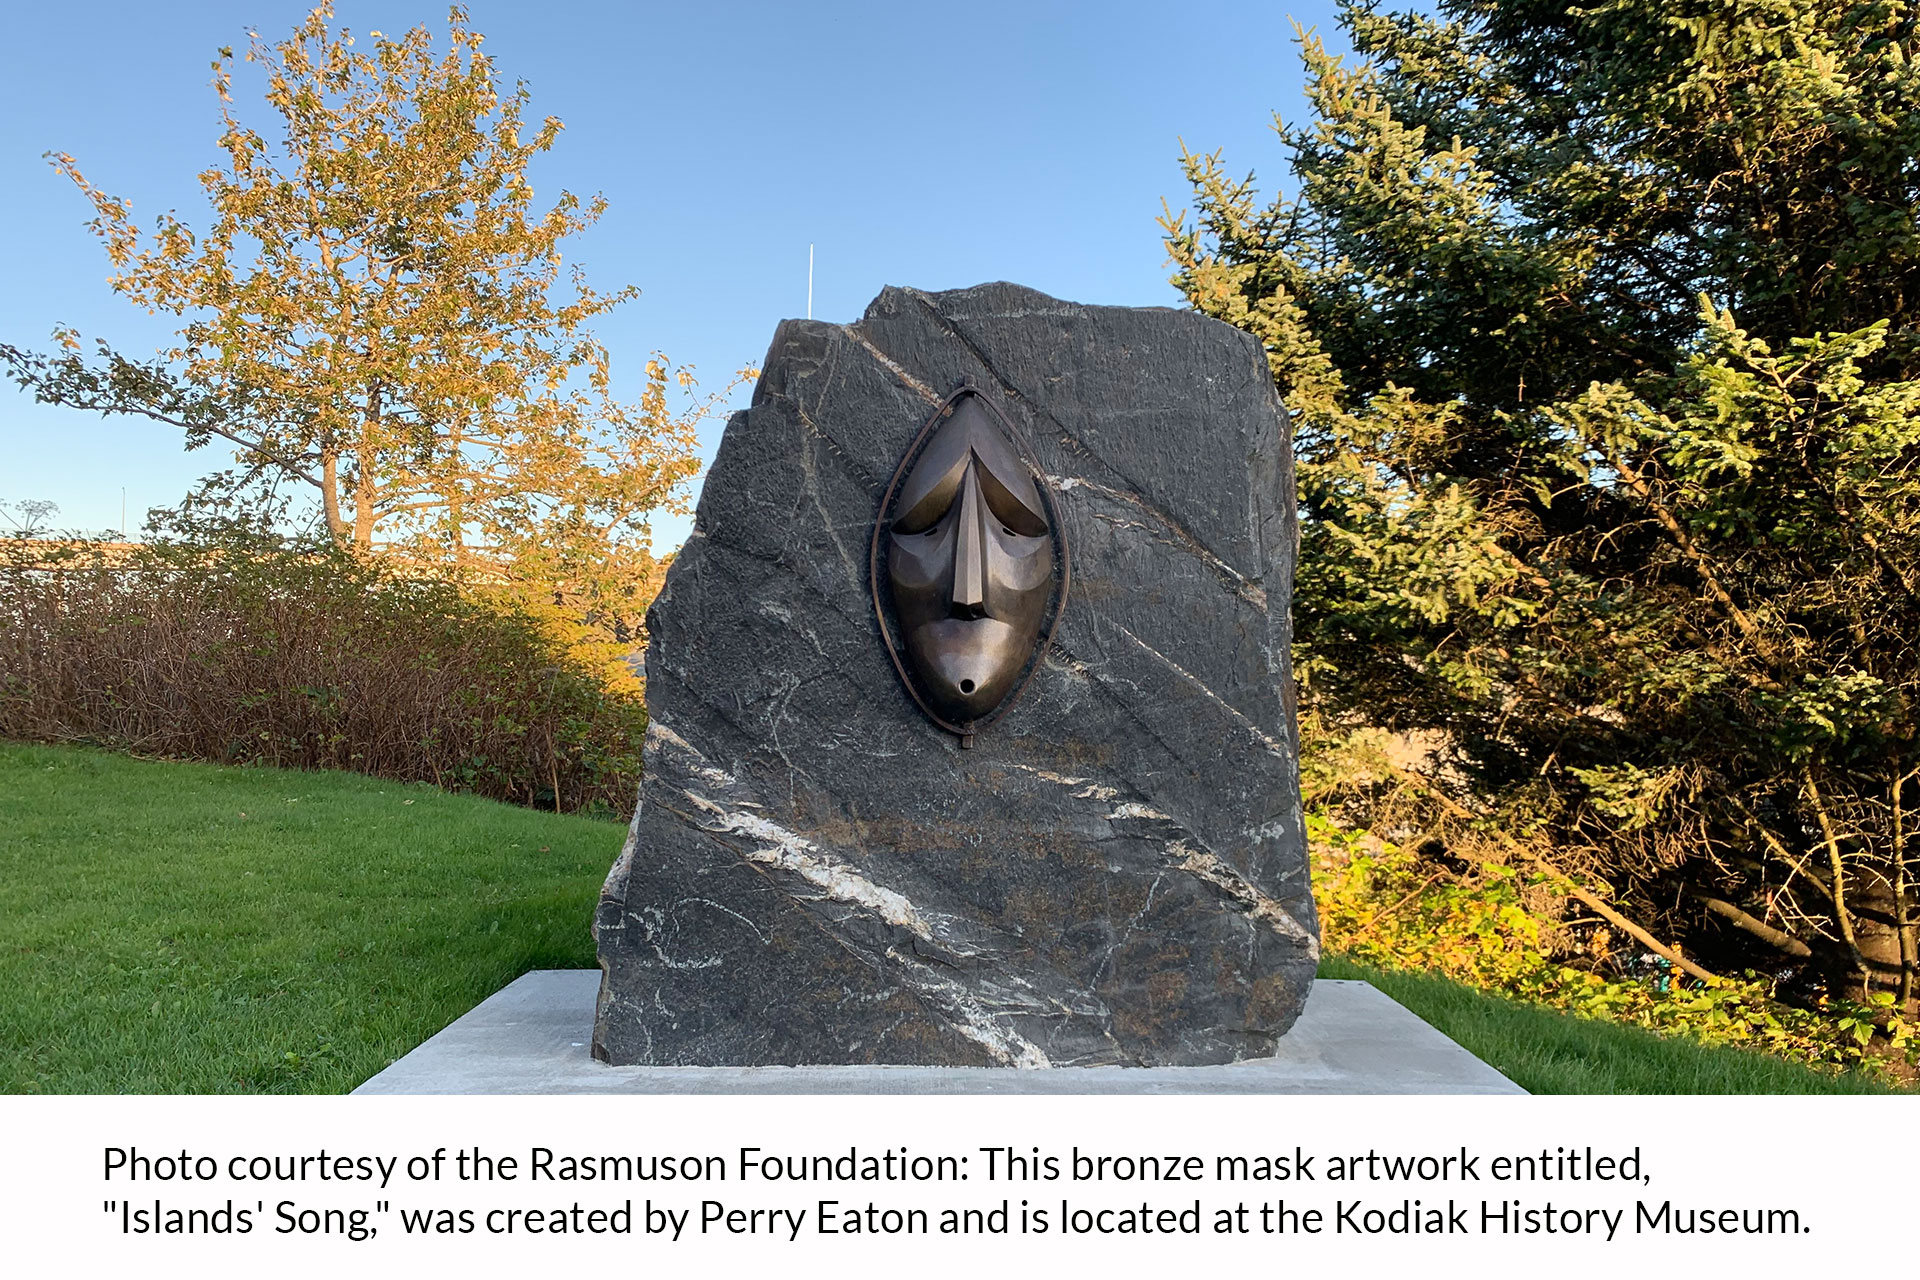 "Photo courtesty of the Rasmuson Foundation: This bronze mask artwork entitled ""Islands' Song"" was created by Perry Eaton and is located at the Kodiak History Museum."